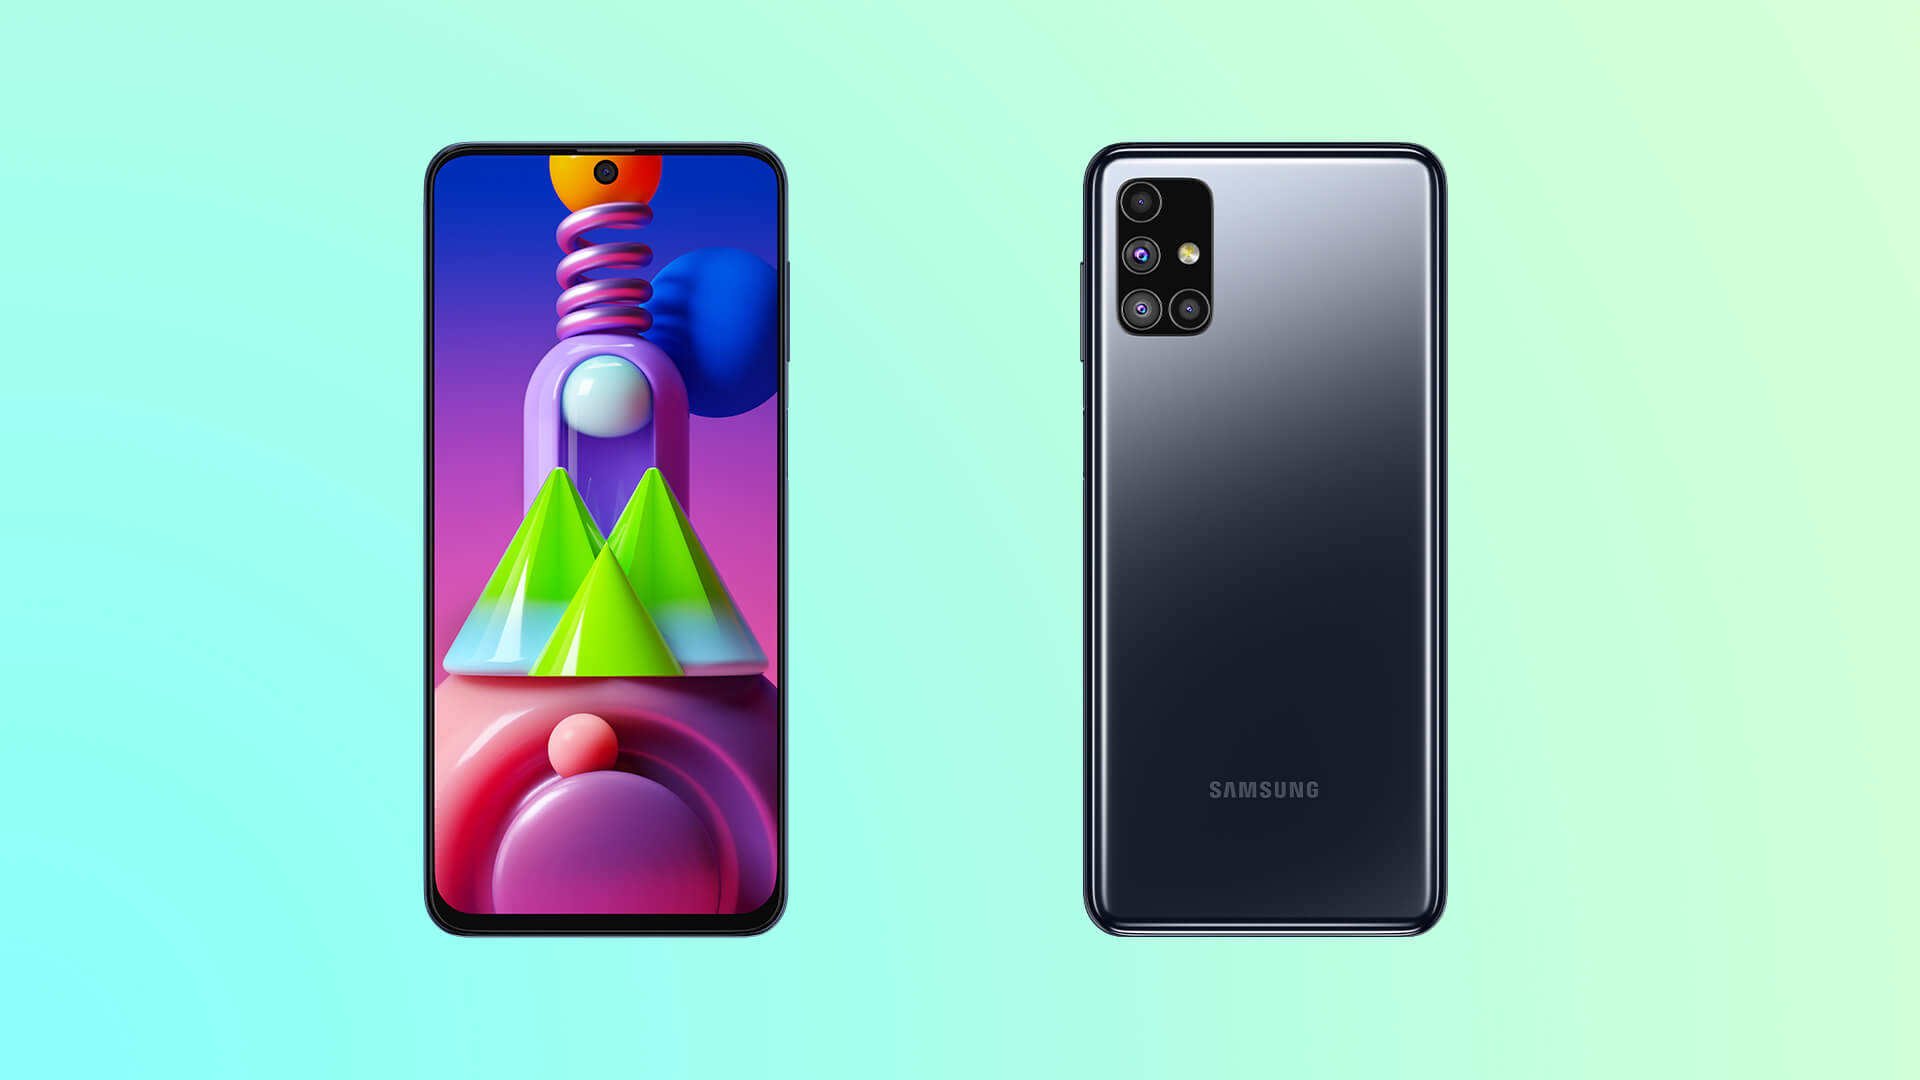 Samsung Galaxy M51 Launched in India with 64MP Quad-Camera, 7,000mAh Battery: Price, Specs, Offers